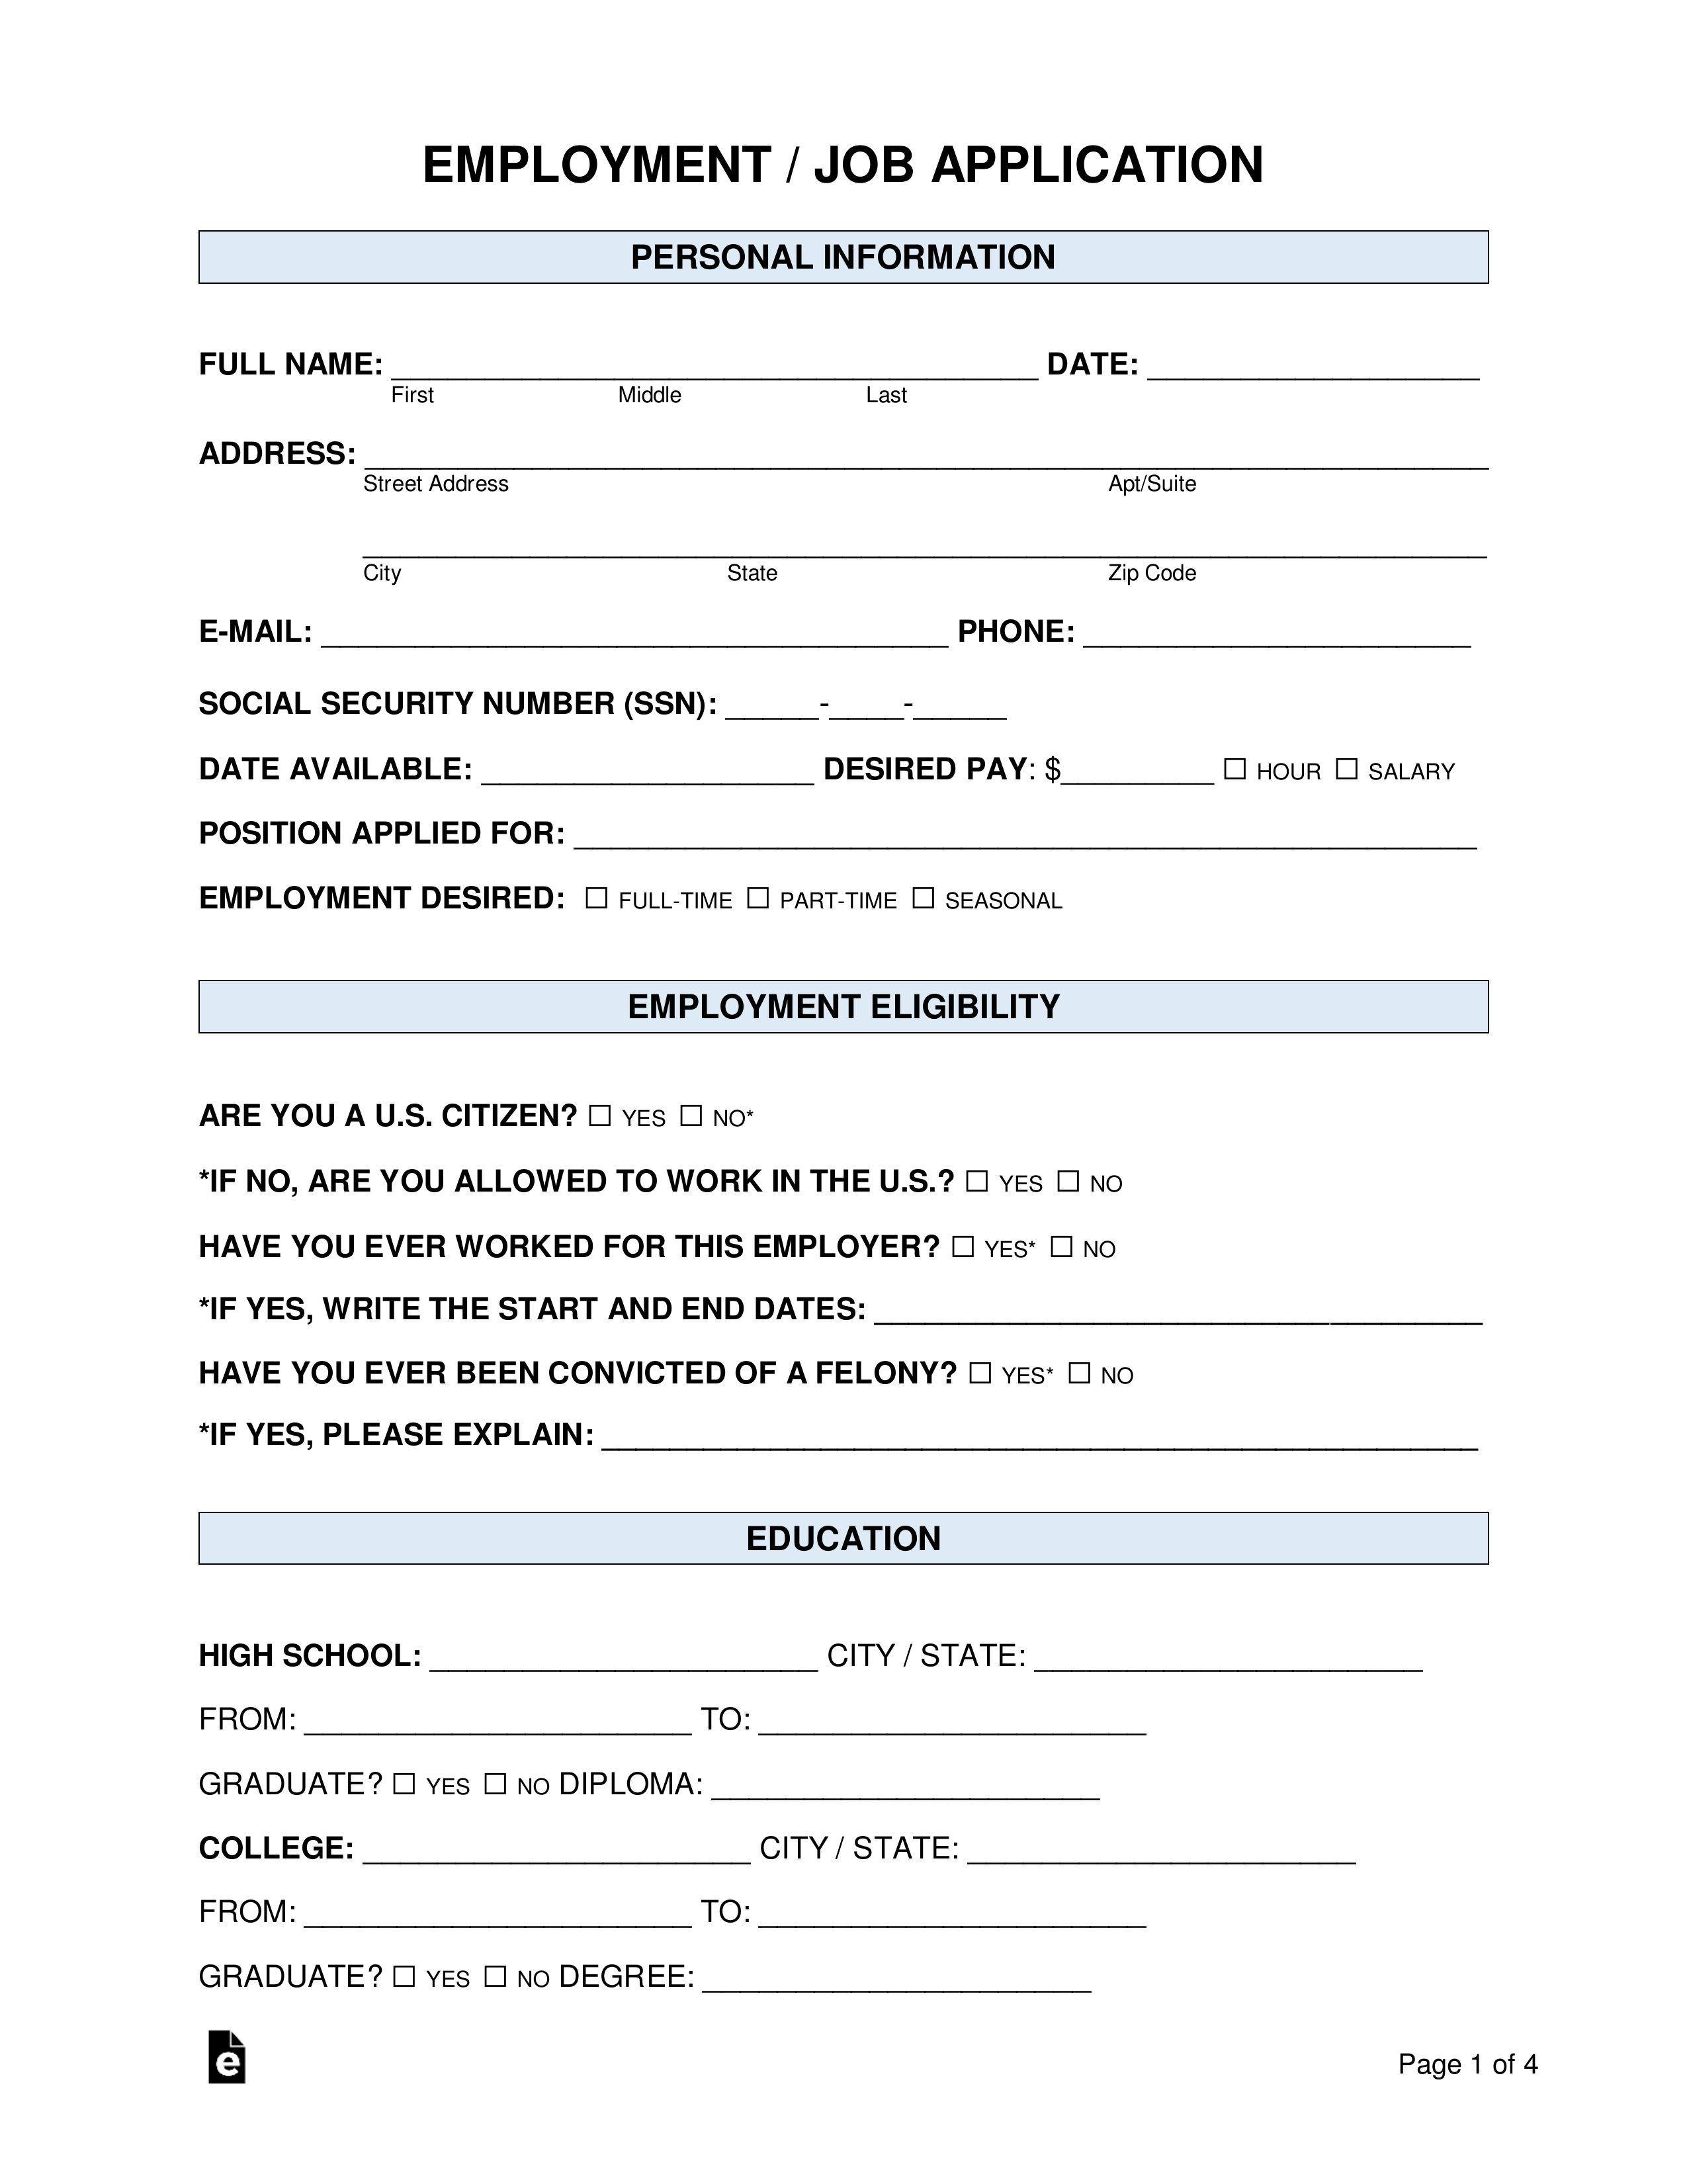 Employee Application Form Template Free Awesome 50 Free Employment Job Application Form Templates Job Application Template Job Application Form Job Application